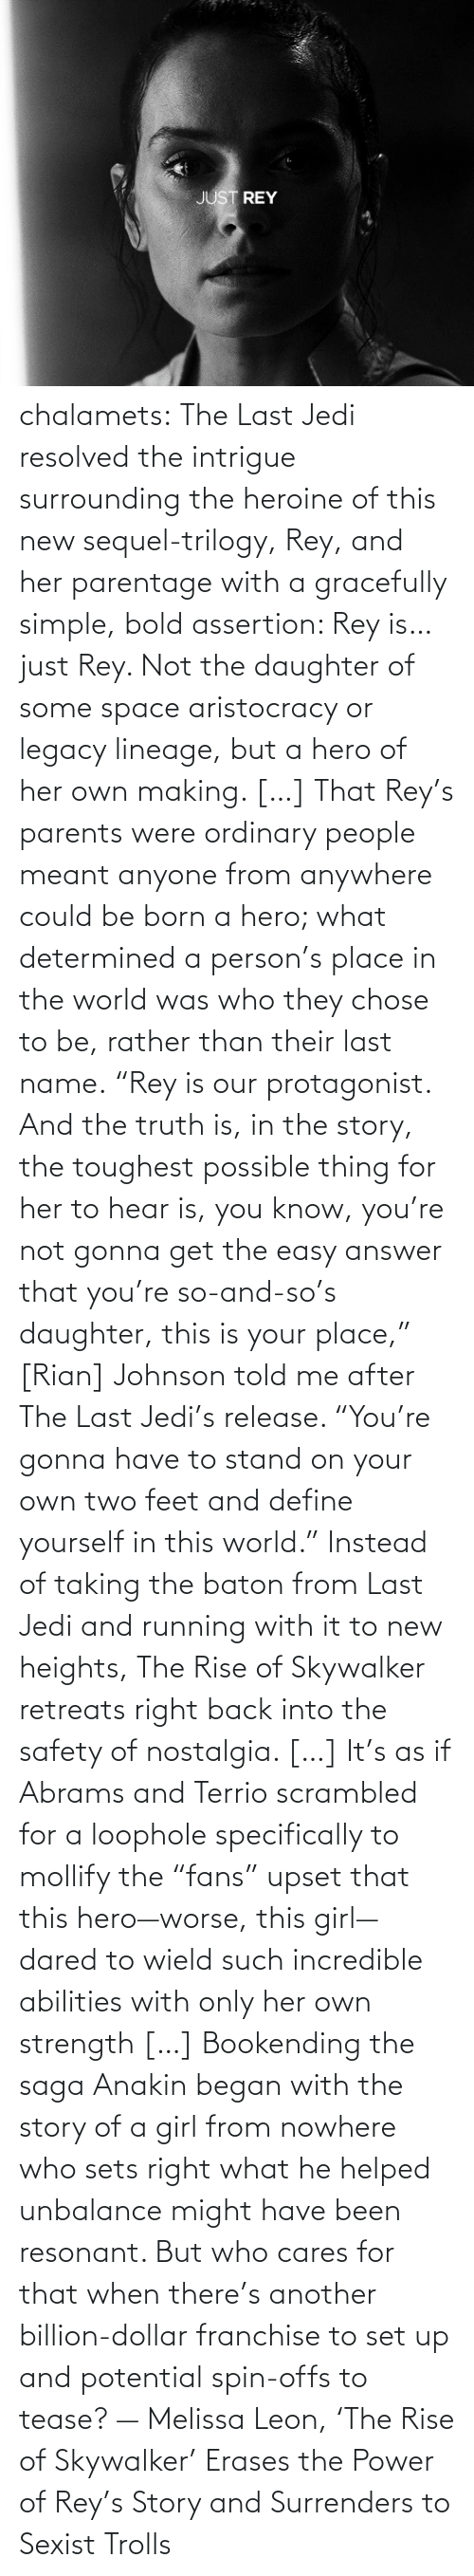 "Tumblr Com: chalamets:  The Last Jedi resolved the intrigue surrounding the heroine of this new sequel-trilogy, Rey, and her parentage with a gracefully simple, bold assertion: Rey is… just Rey. Not the daughter of some space aristocracy or legacy lineage, but a hero of her own making. […] That Rey's parents were ordinary people meant anyone from anywhere could be born a hero; what determined a person's place in the world was who they chose to be, rather than their last name. ""Rey is our protagonist. And the truth is, in the story, the toughest possible thing for her to hear is, you know, you're not gonna get the easy answer that you're so-and-so's daughter, this is your place,"" [Rian] Johnson told me after The Last Jedi's release. ""You're gonna have to stand on your own two feet and define yourself in this world."" Instead of taking the baton from Last Jedi and running with it to new heights, The Rise of Skywalker retreats right back into the safety of nostalgia. […] It's as if Abrams and Terrio scrambled for a loophole specifically to mollify the ""fans"" upset that this hero—worse, this girl—dared to wield such incredible abilities with only her own strength […] Bookending the saga Anakin began with the story of a girl from nowhere who sets right what he helped unbalance might have been resonant. But who cares for that when there's another billion-dollar franchise to set up and potential spin-offs to tease? — Melissa Leon, 'The Rise of Skywalker' Erases the Power of Rey's Story and Surrenders to Sexist Trolls"